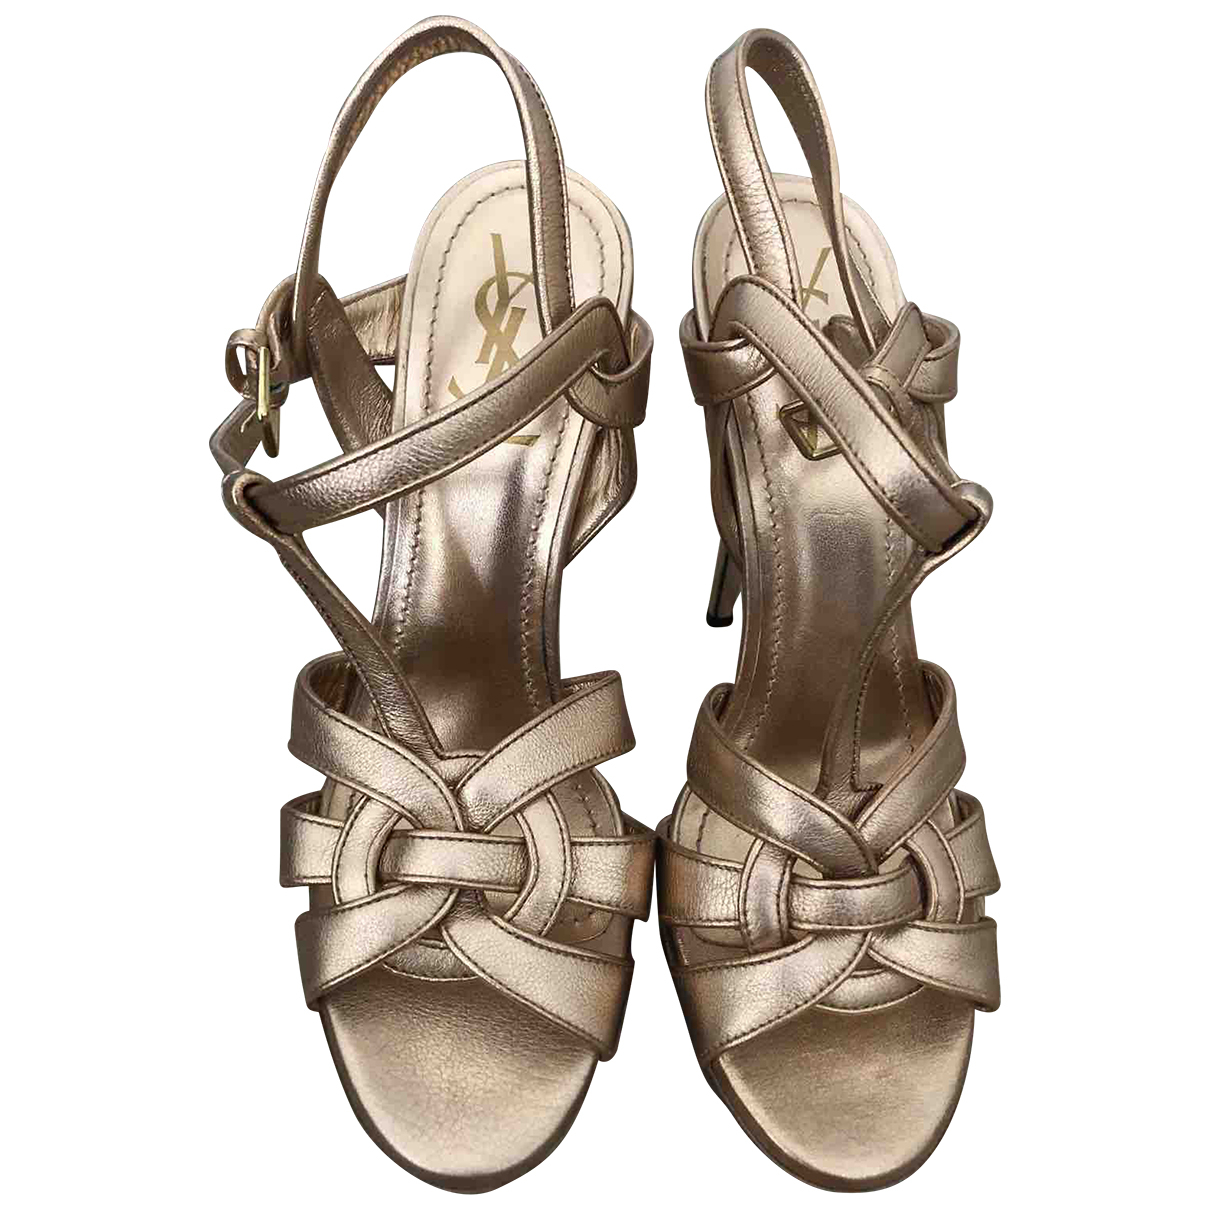 Yves Saint Laurent Tribute Sandalen in  Metallic Lackleder